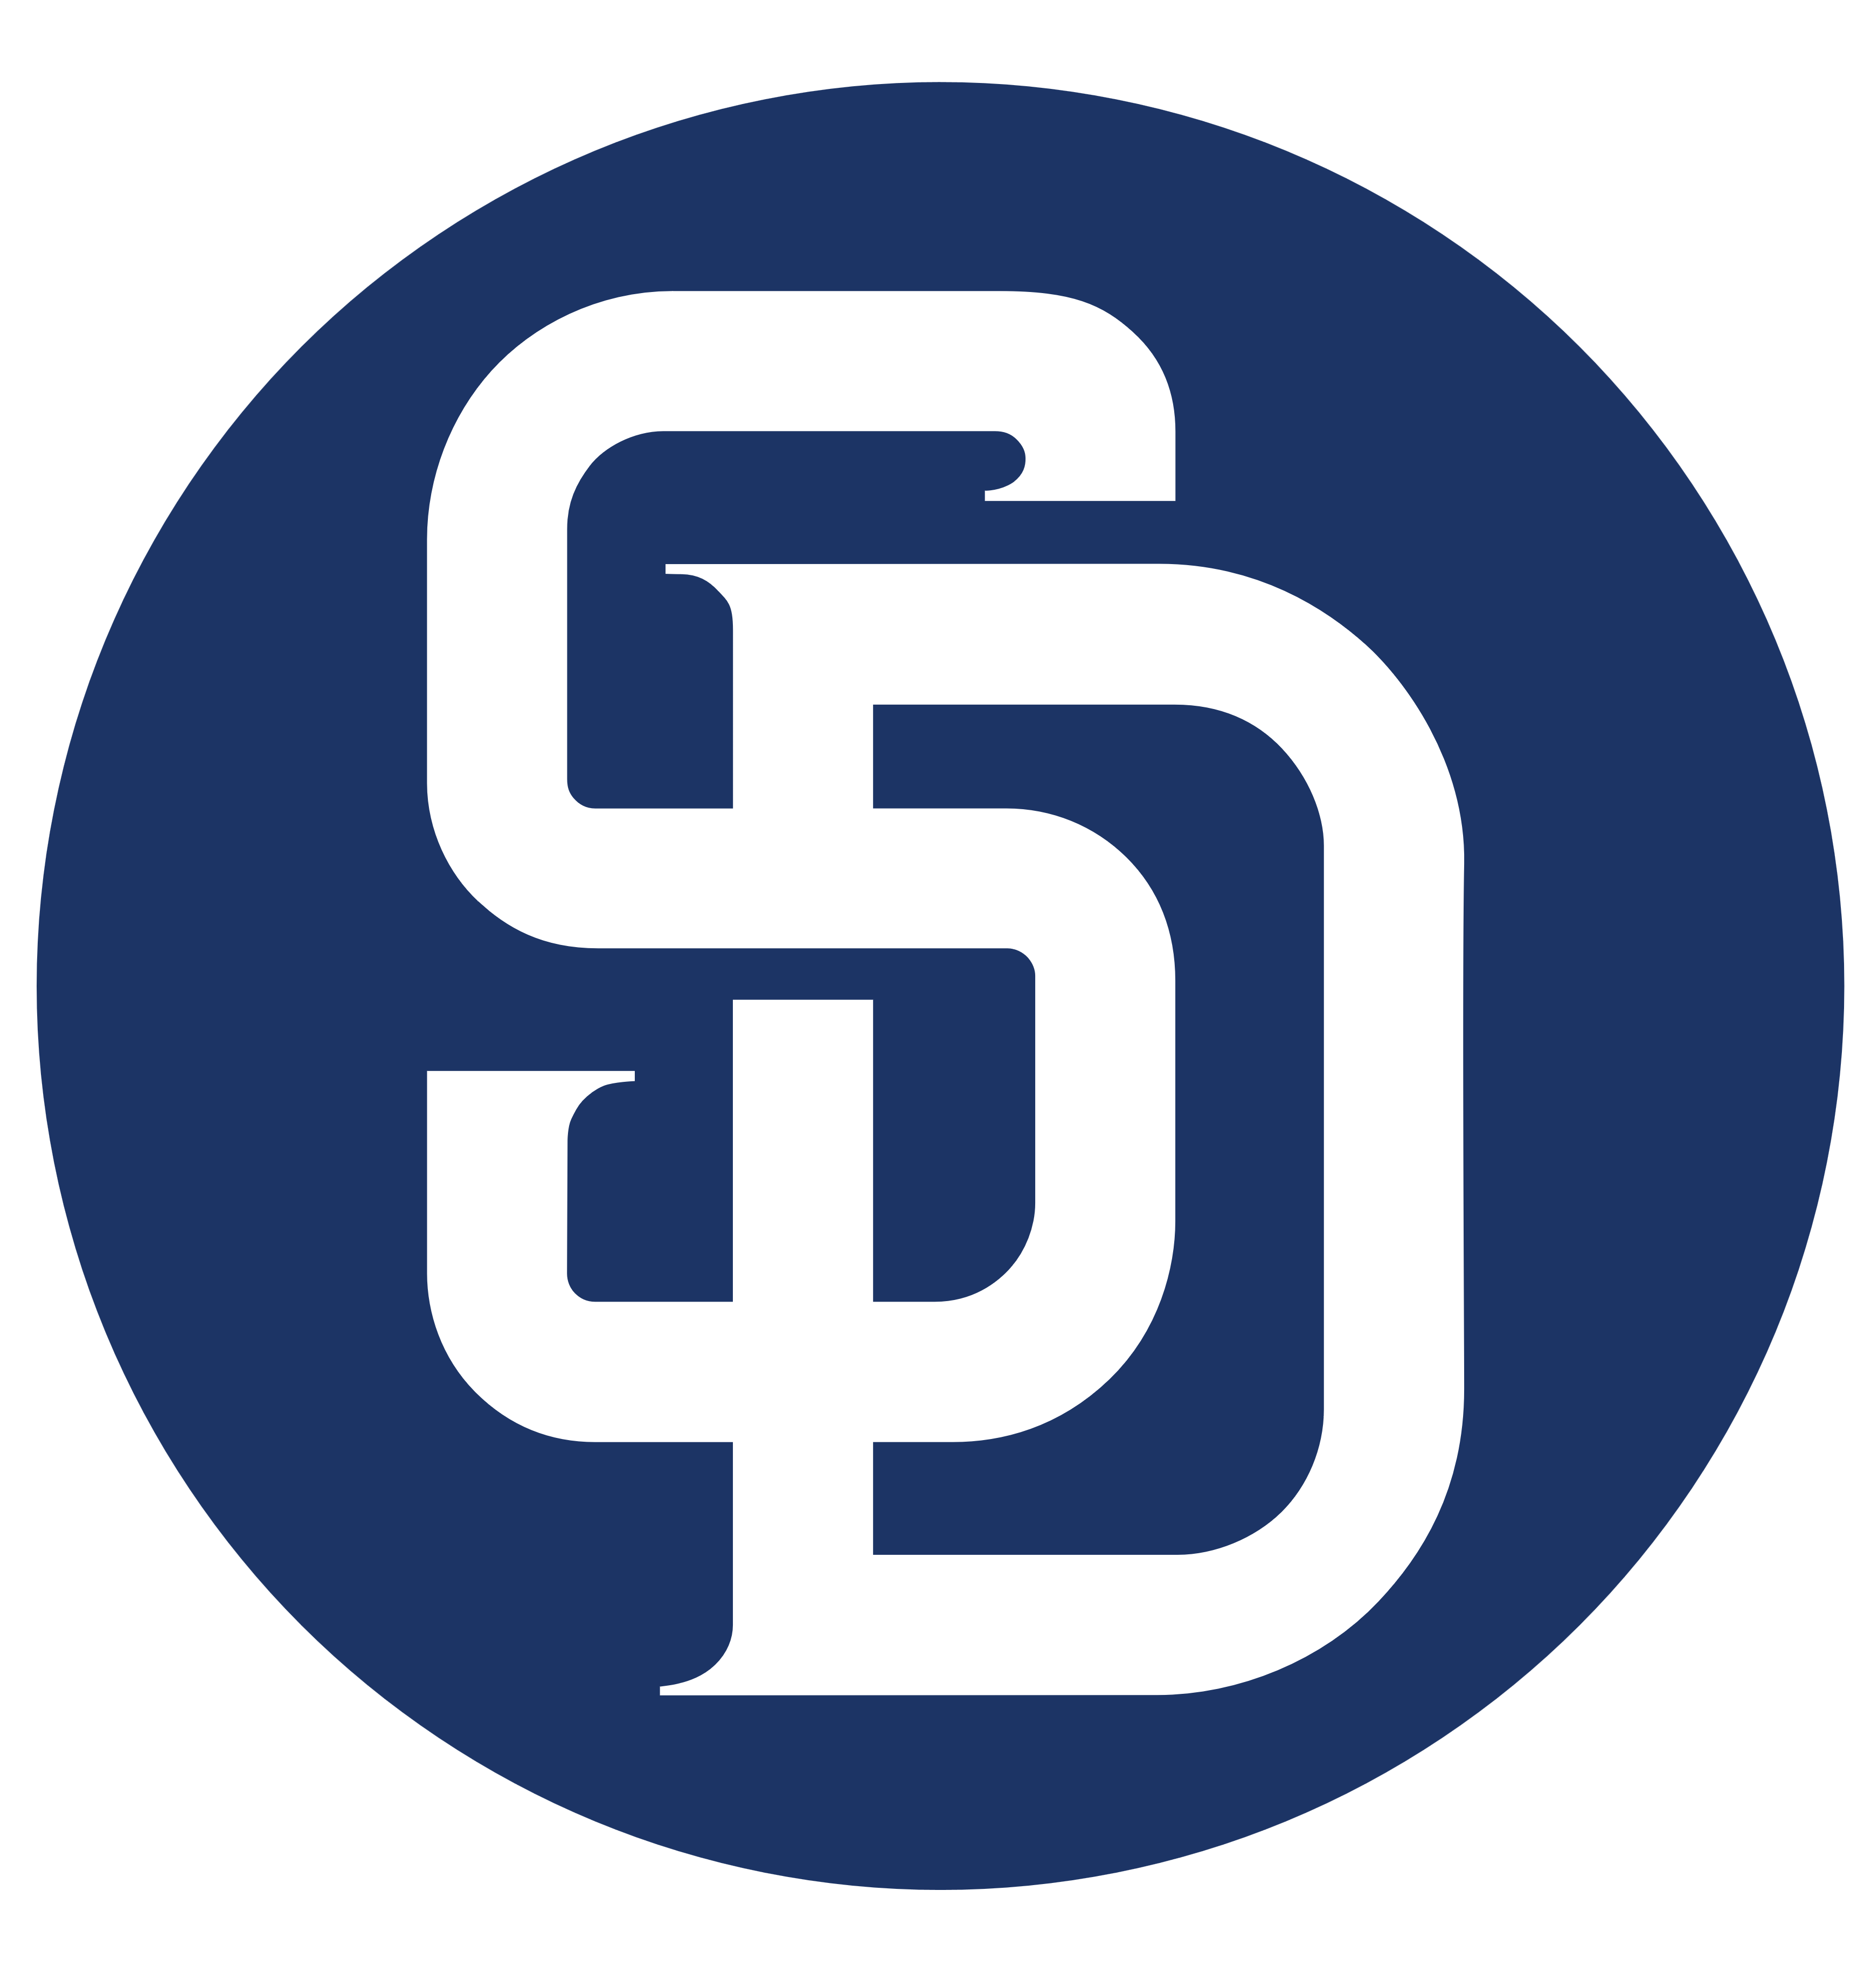 san diego padres logos download giants baseball logo vector giants baseball logo vector